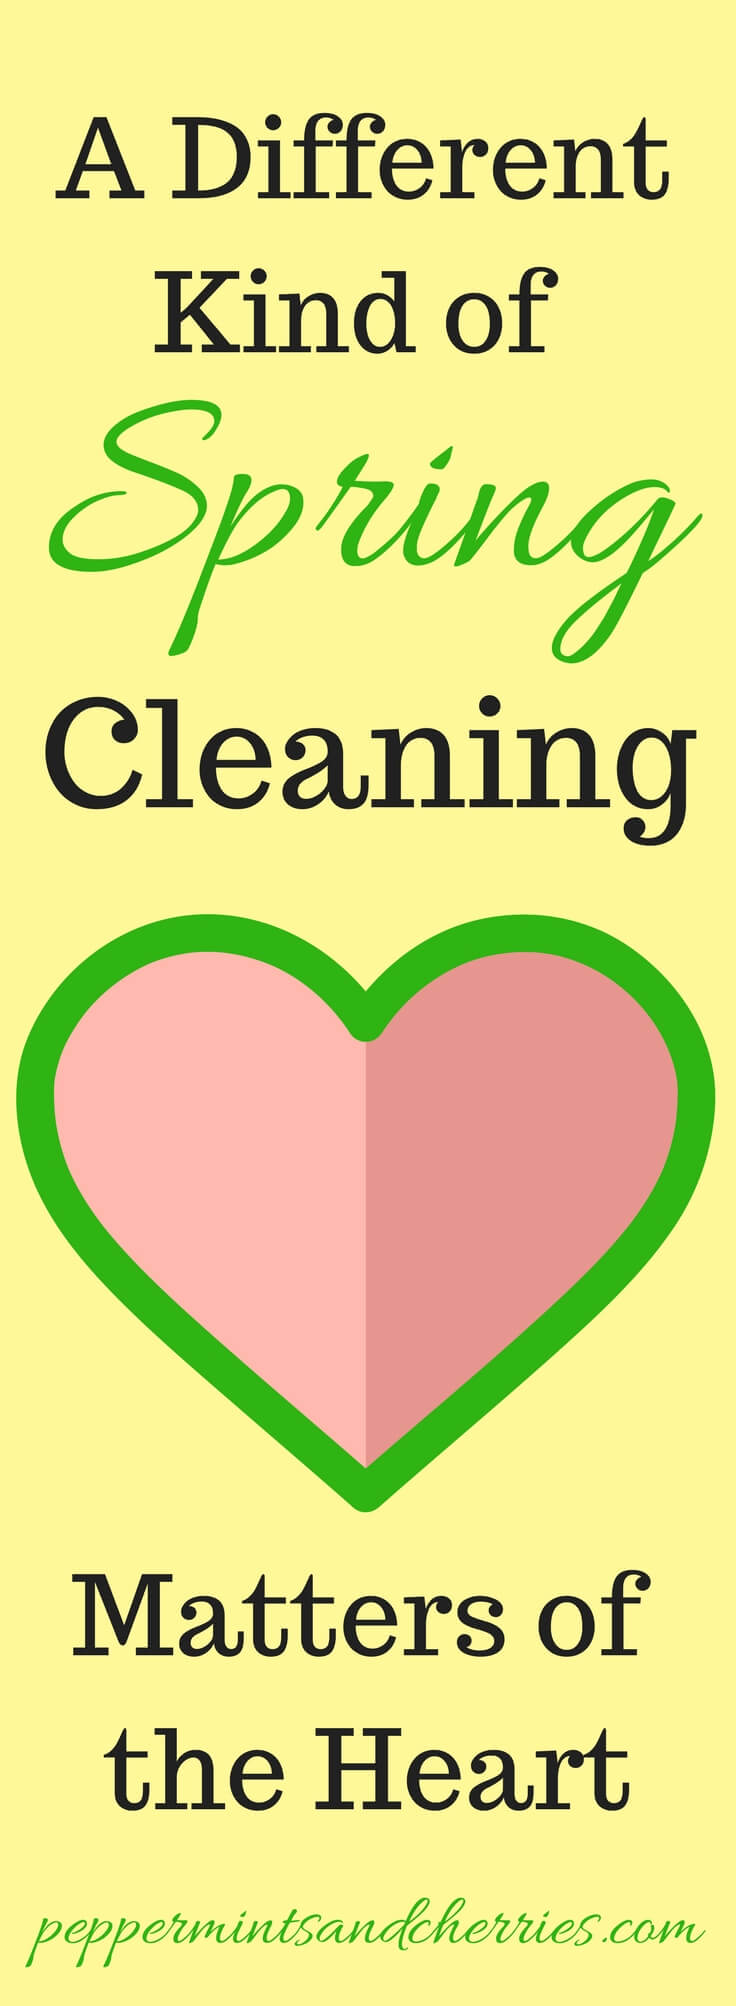 A Different Kind of Spring Cleaning, Matters of the Heart www.peppermintsandcherries.com